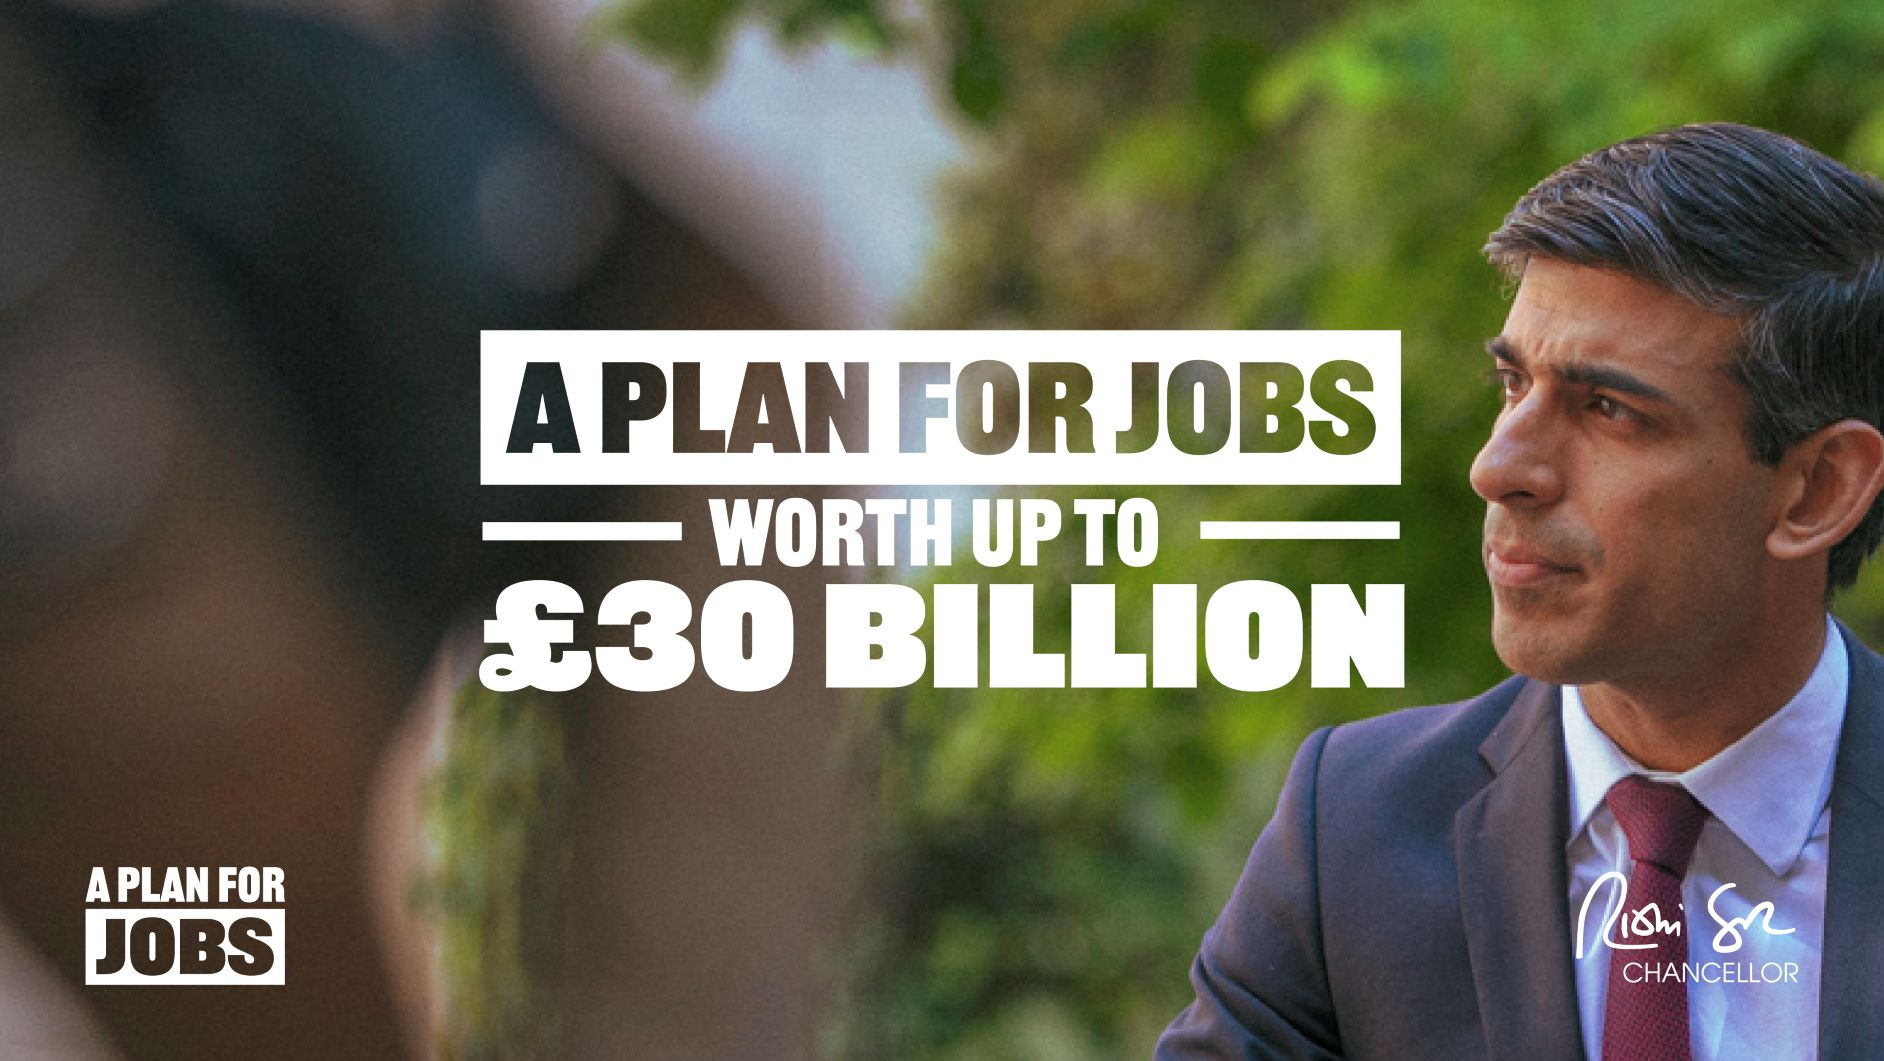 Chancellor's Plan for Jobs to help the UK's recovery